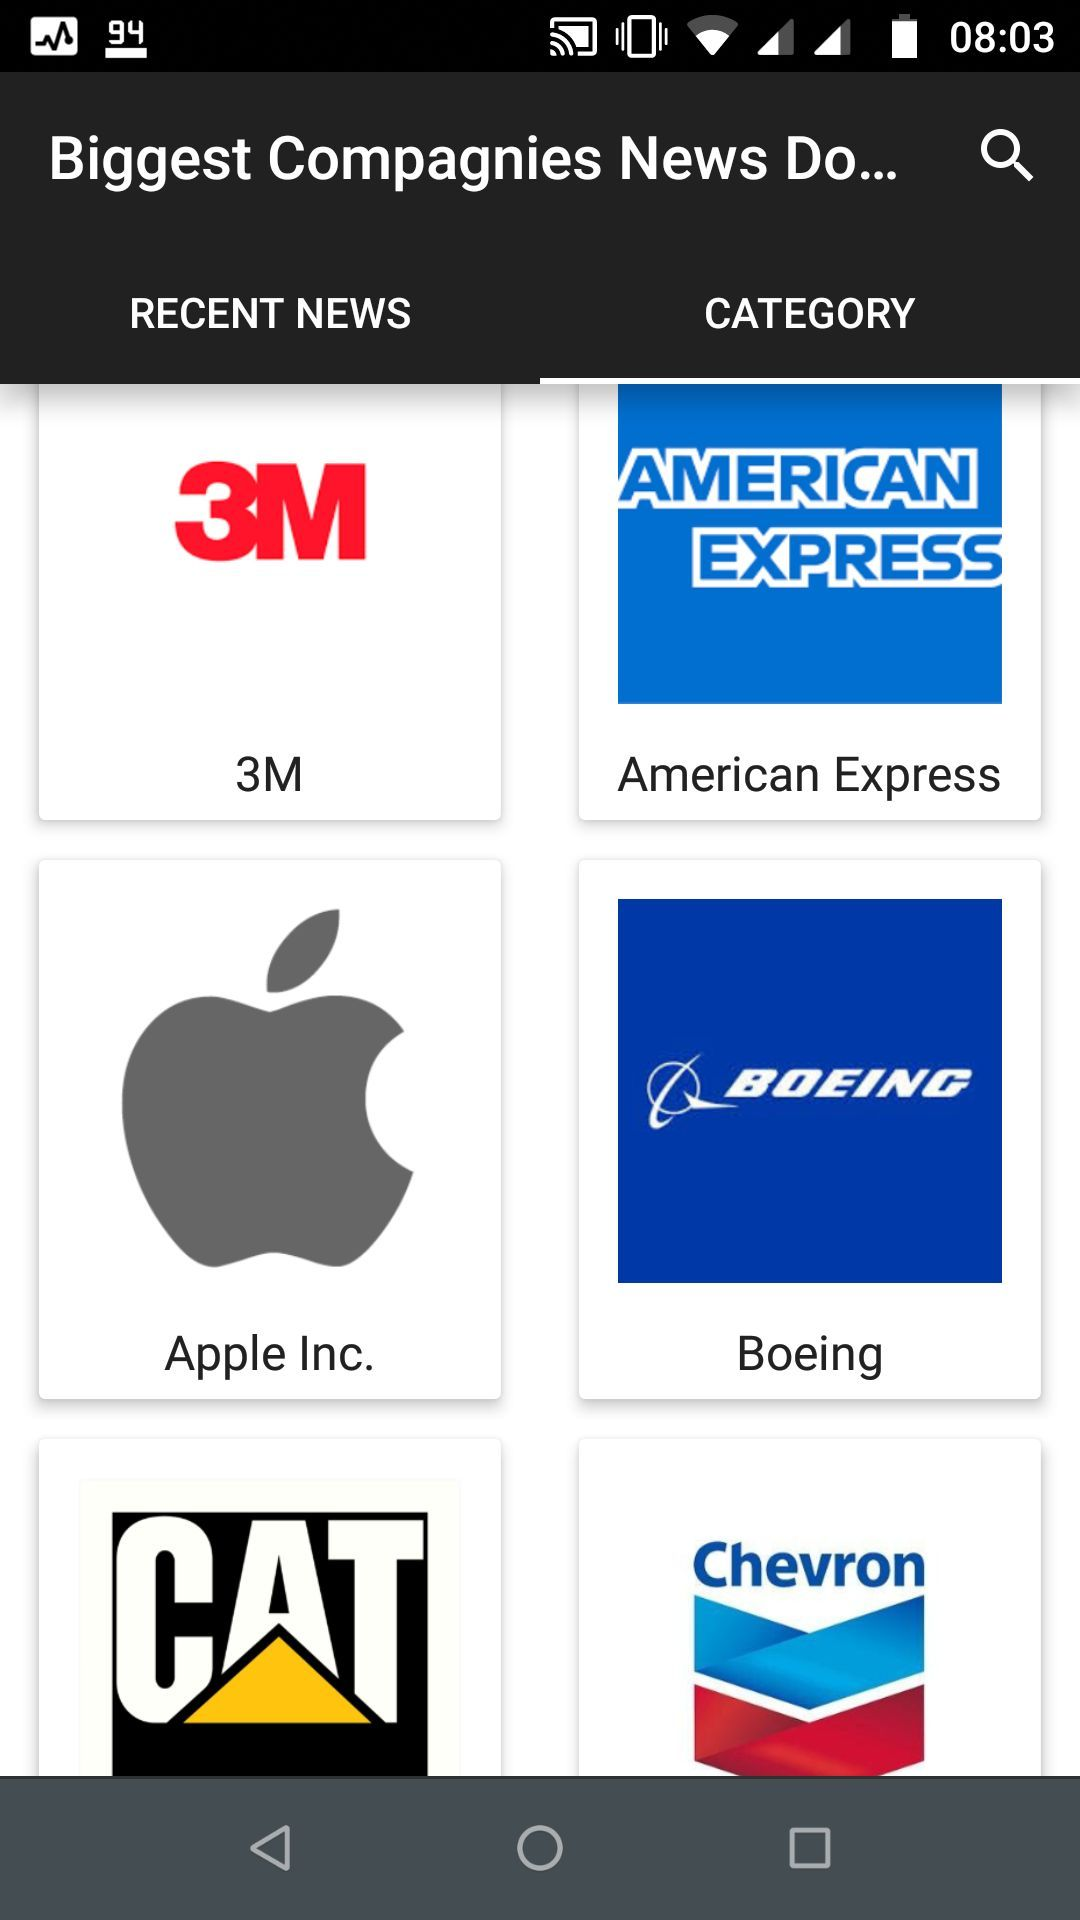 Mobile App: Biggest Companies News Dow Jones News gives you the latest news from the world's largest companies. #companies #news #dowjones #nasdaq #love #followme #me